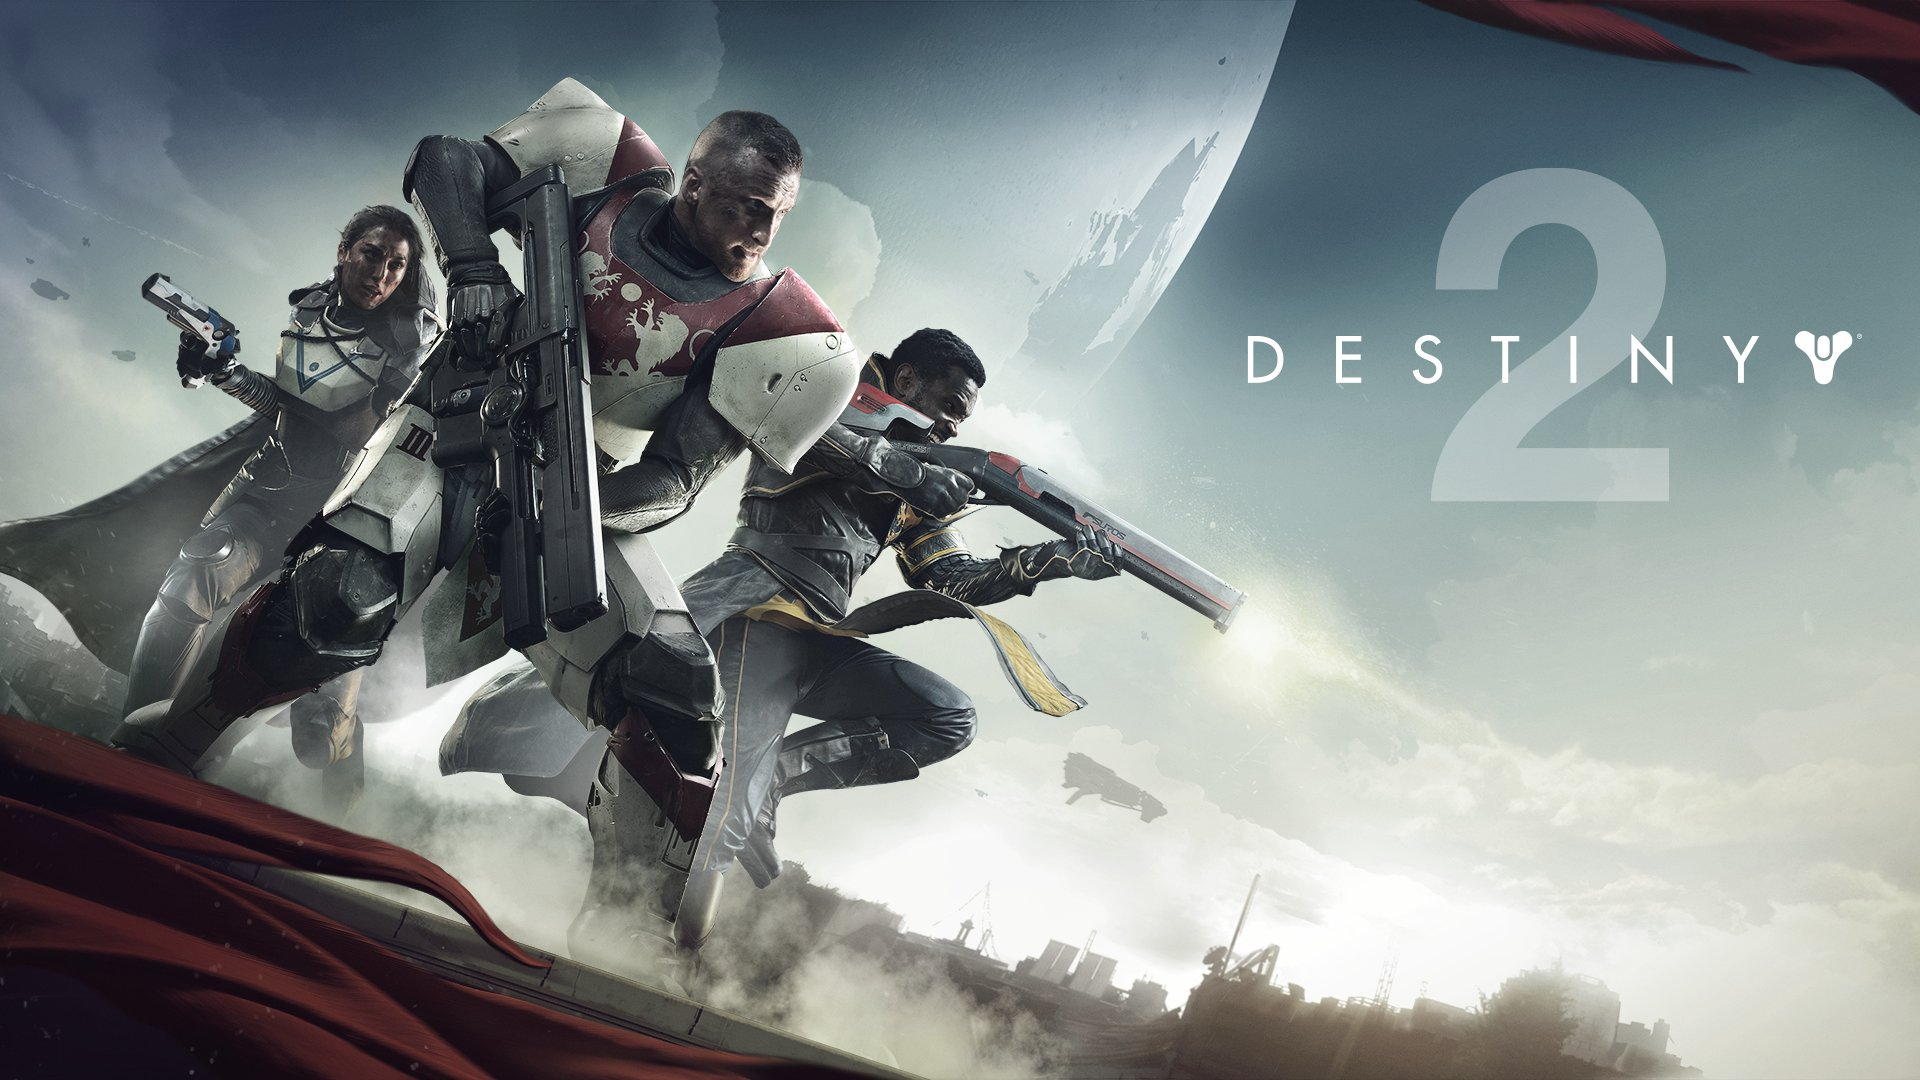 We're livestreaming Destiny 2 at 11:00 AM Pacific tomorrow! Join us: https://t.co/pL75D0n3eY https://t.co/zSK8WQuhko